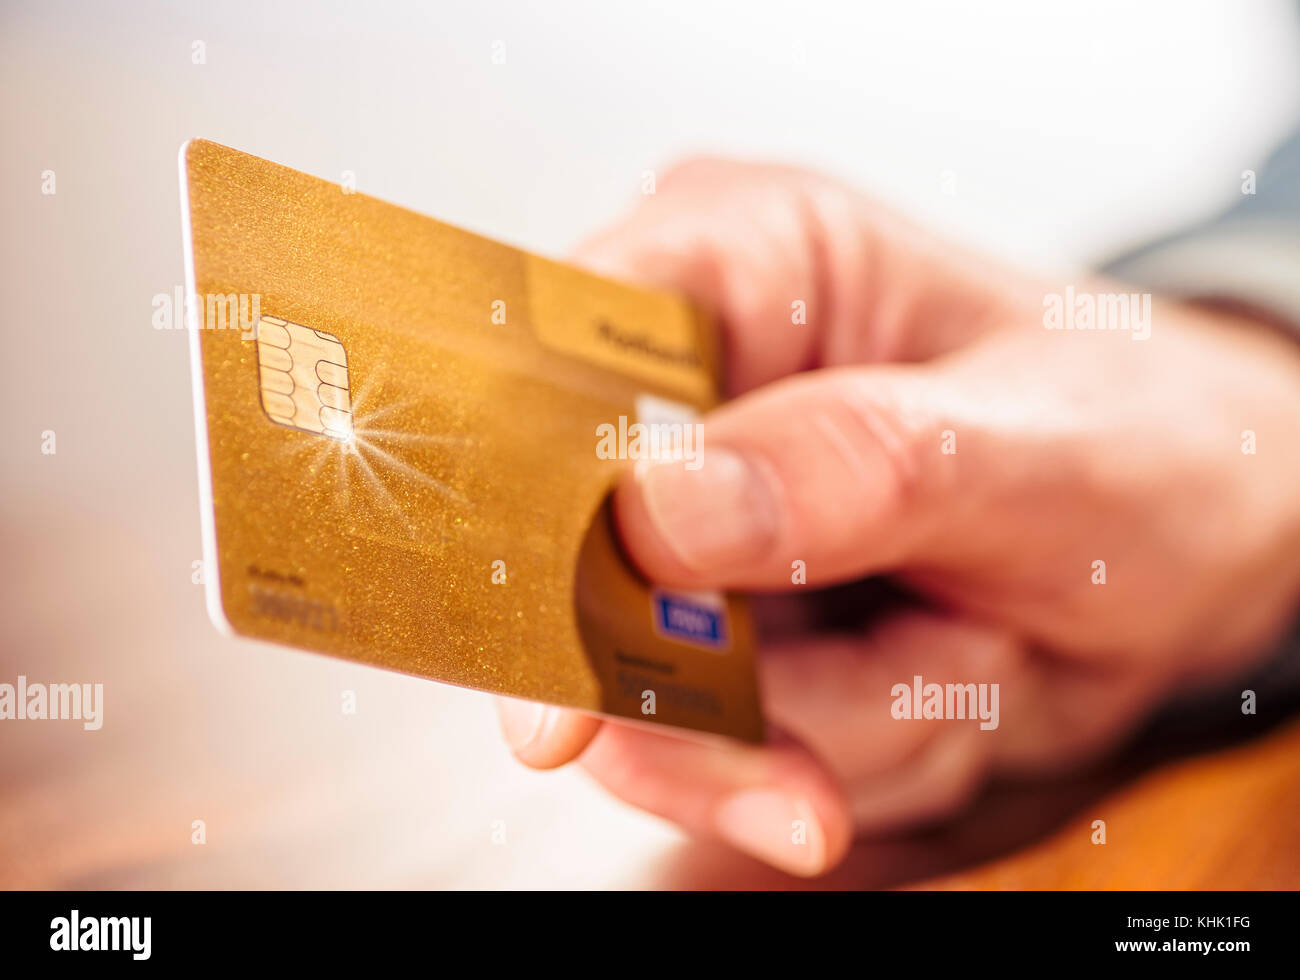 Closeup of a hand with a golden credit card - Stock Image